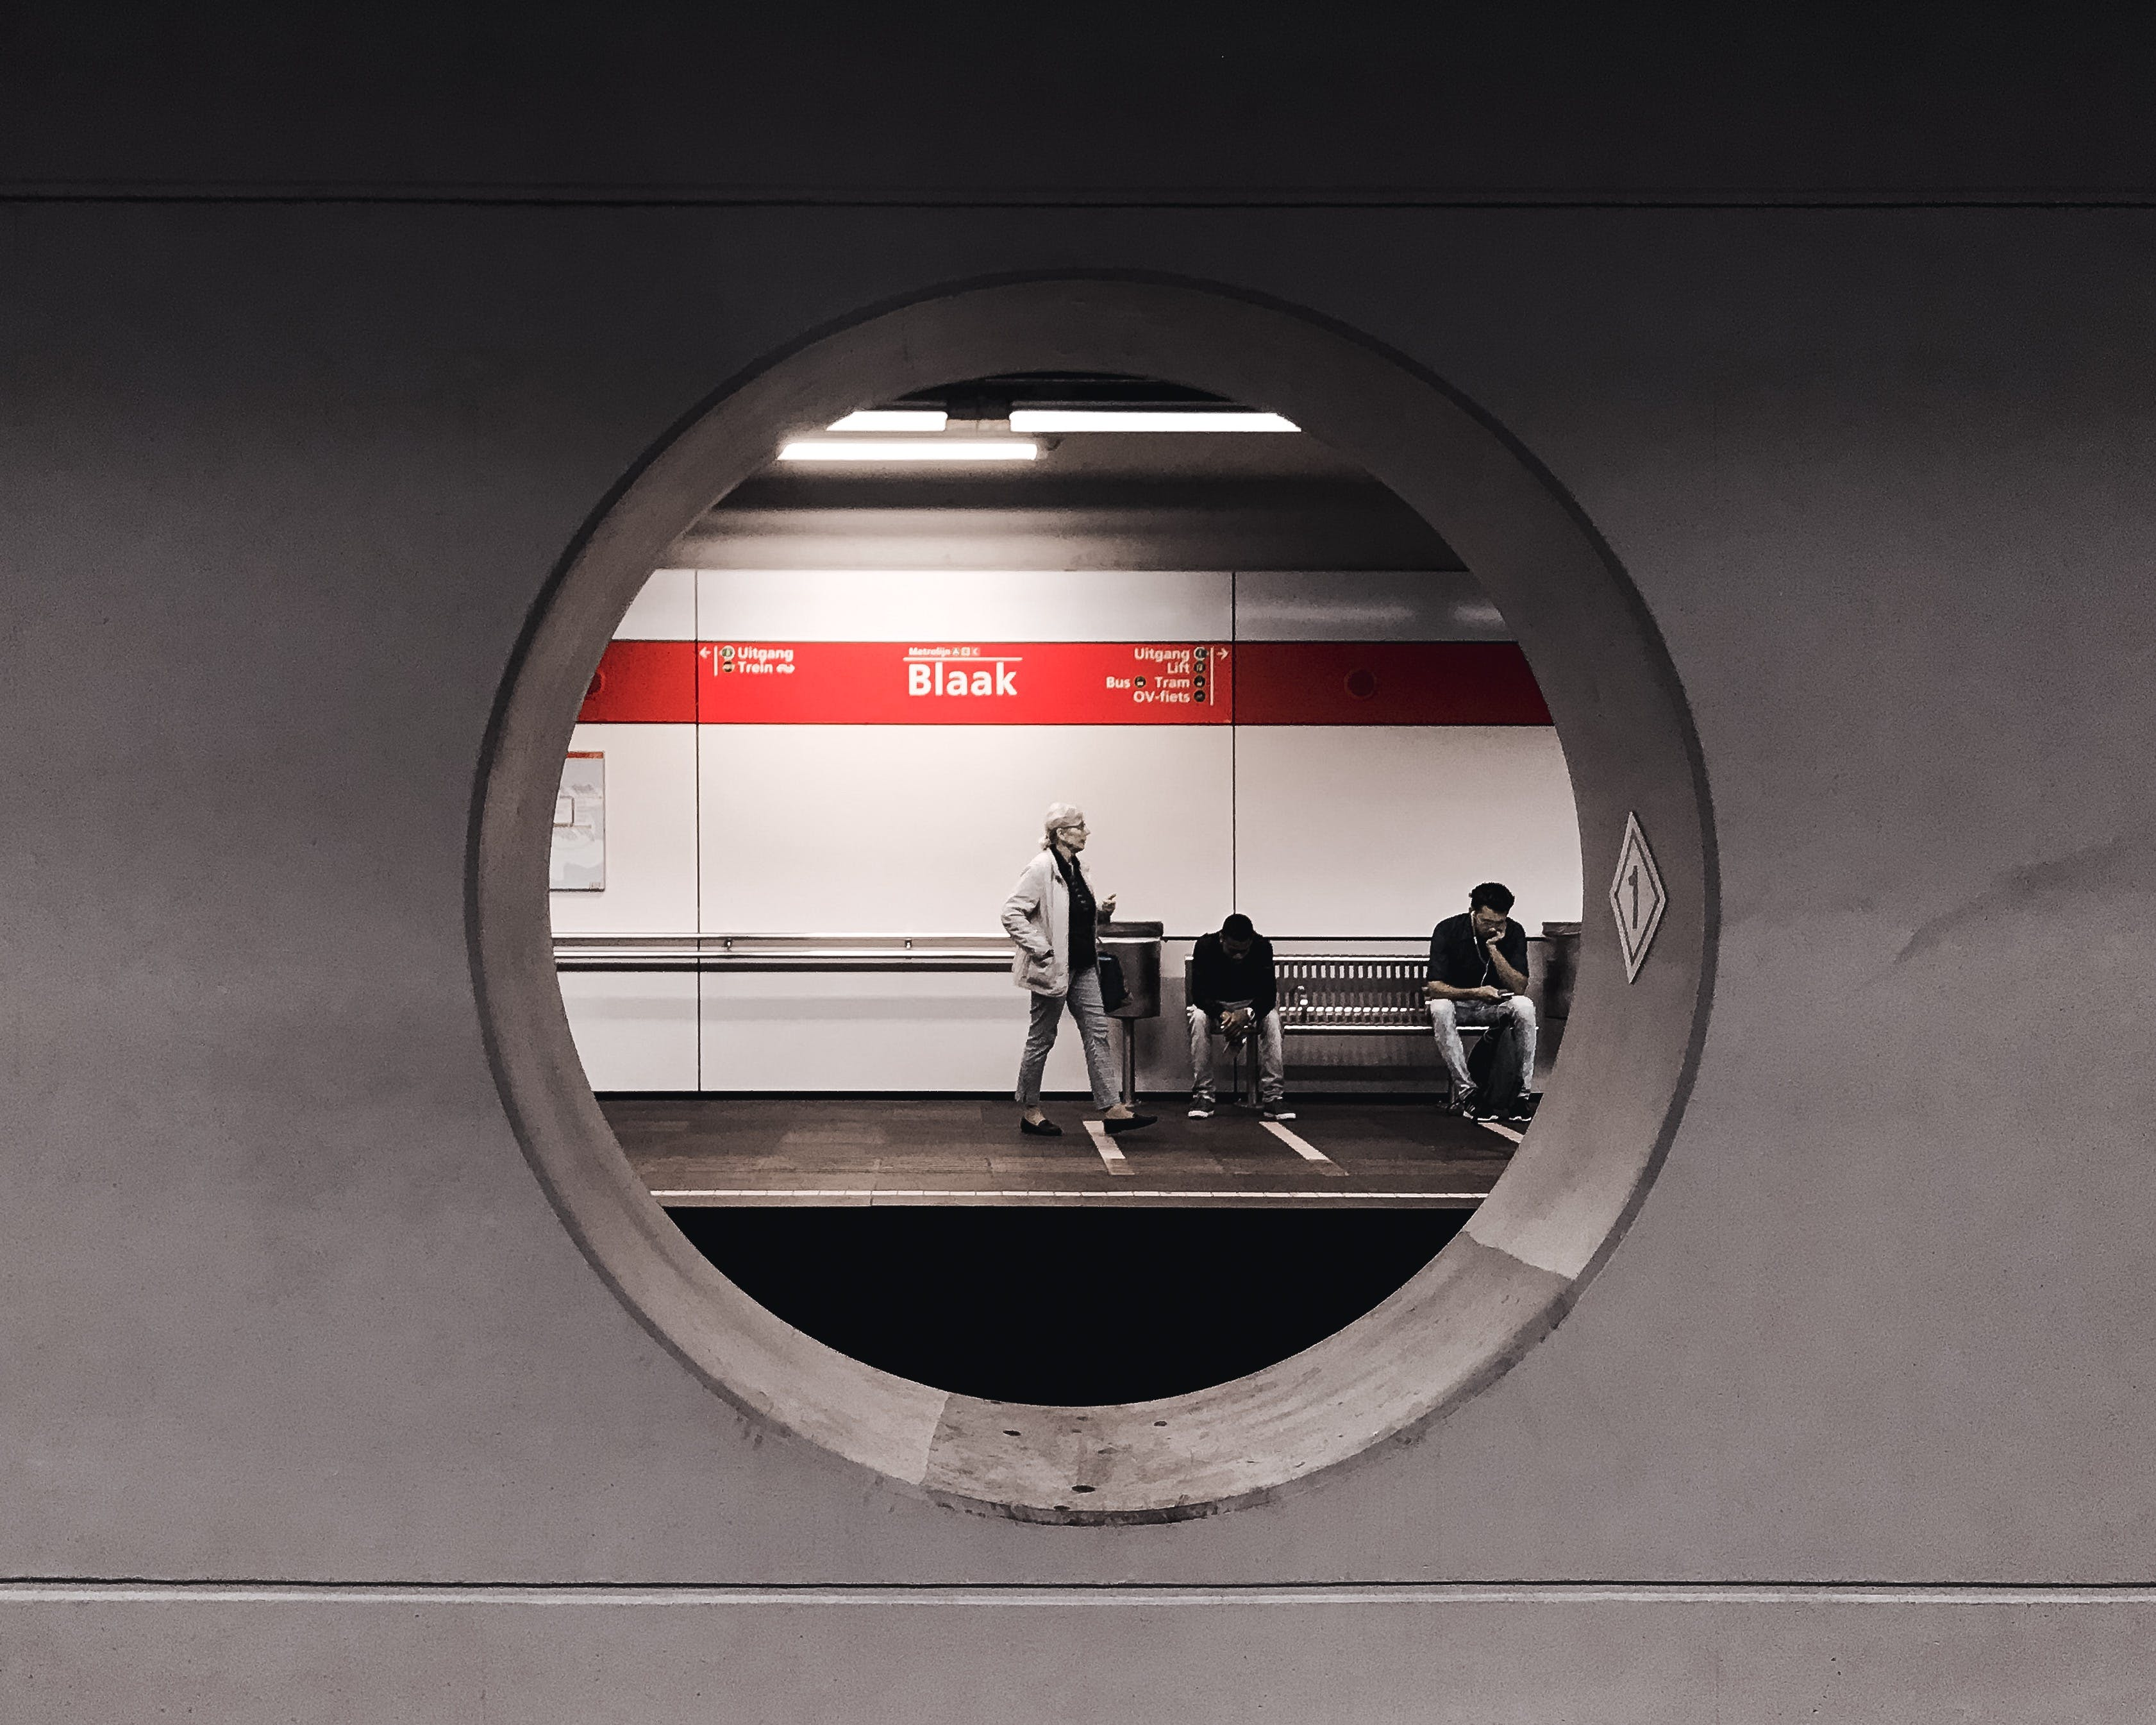 Grayscale Photography of People Waiting in Train Station